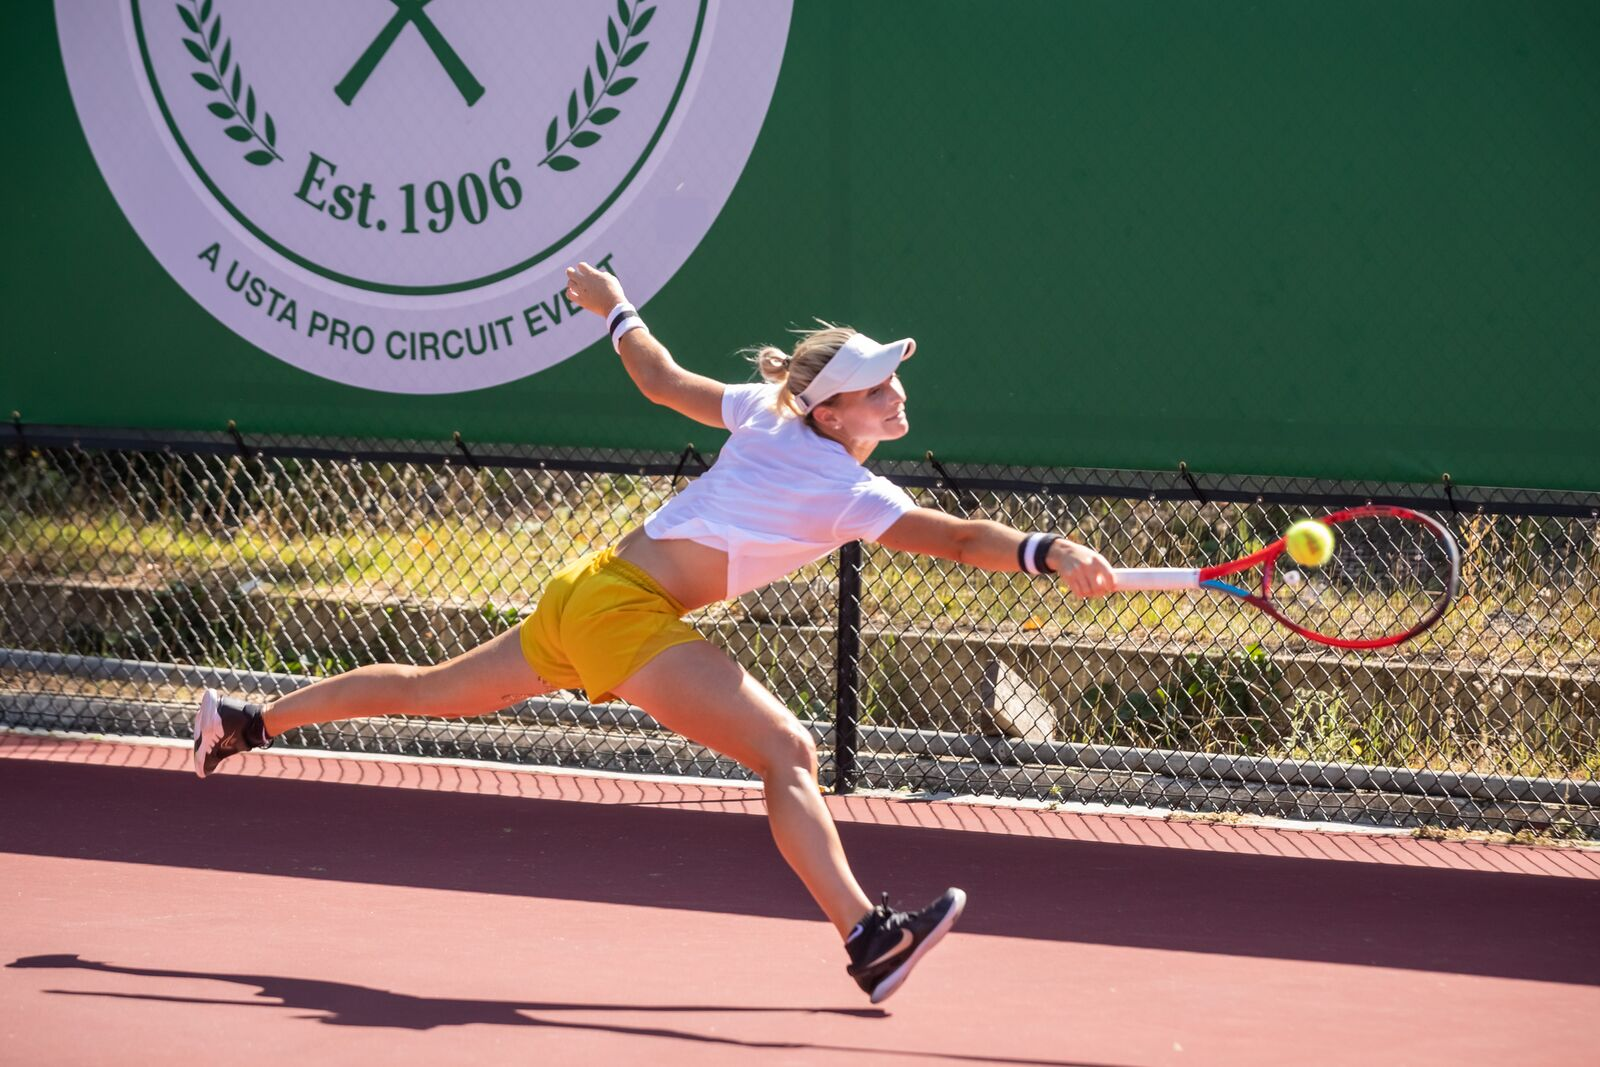 Marcela Zacharias plays in the final round of the Berkeley Tennis Club Women's Challenge tournament on October 3, 2021. Credit: Kelly Sullivan